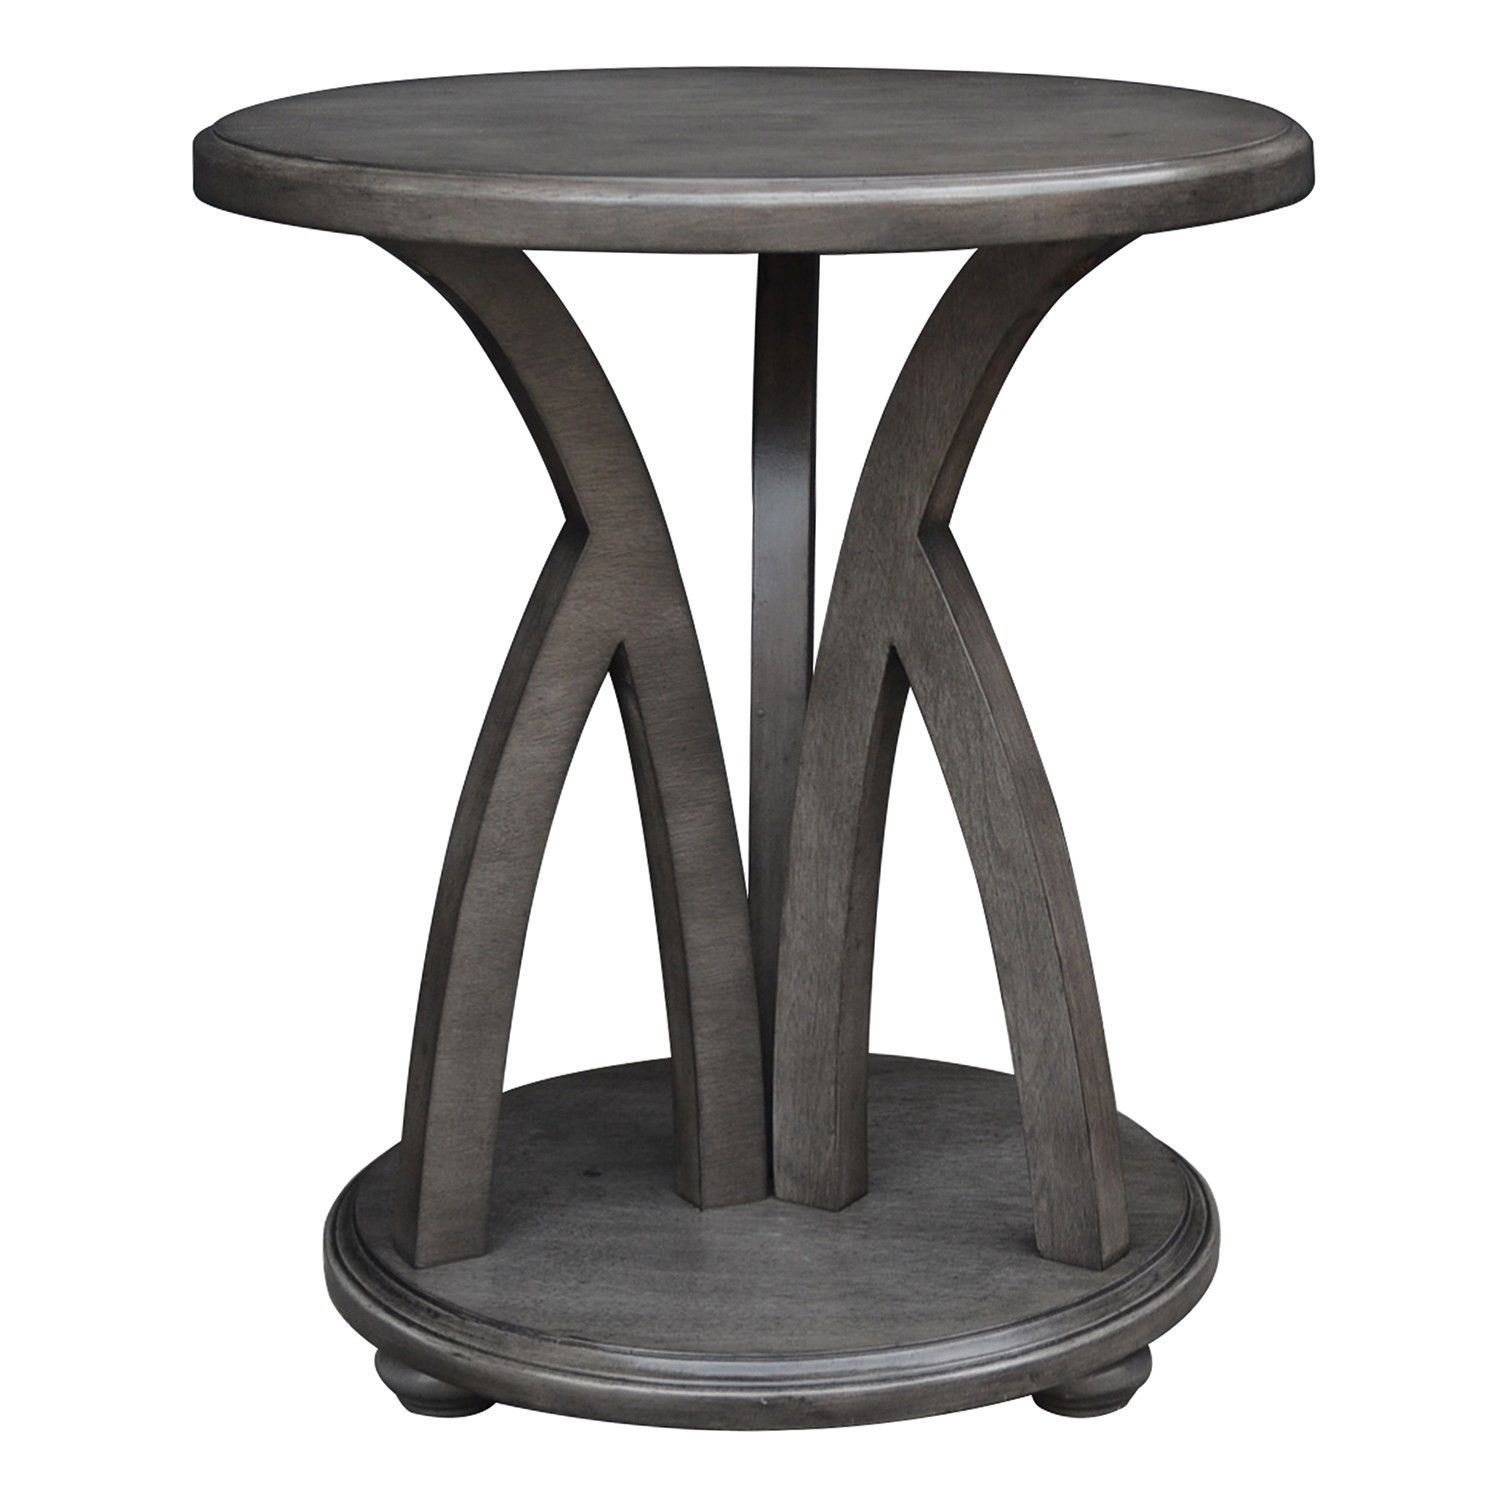 crestview brayden grey accent tables products freya round table antique dining stained glass lamp shades build small concrete coffee modern trunk hampton bay patio set inch runner